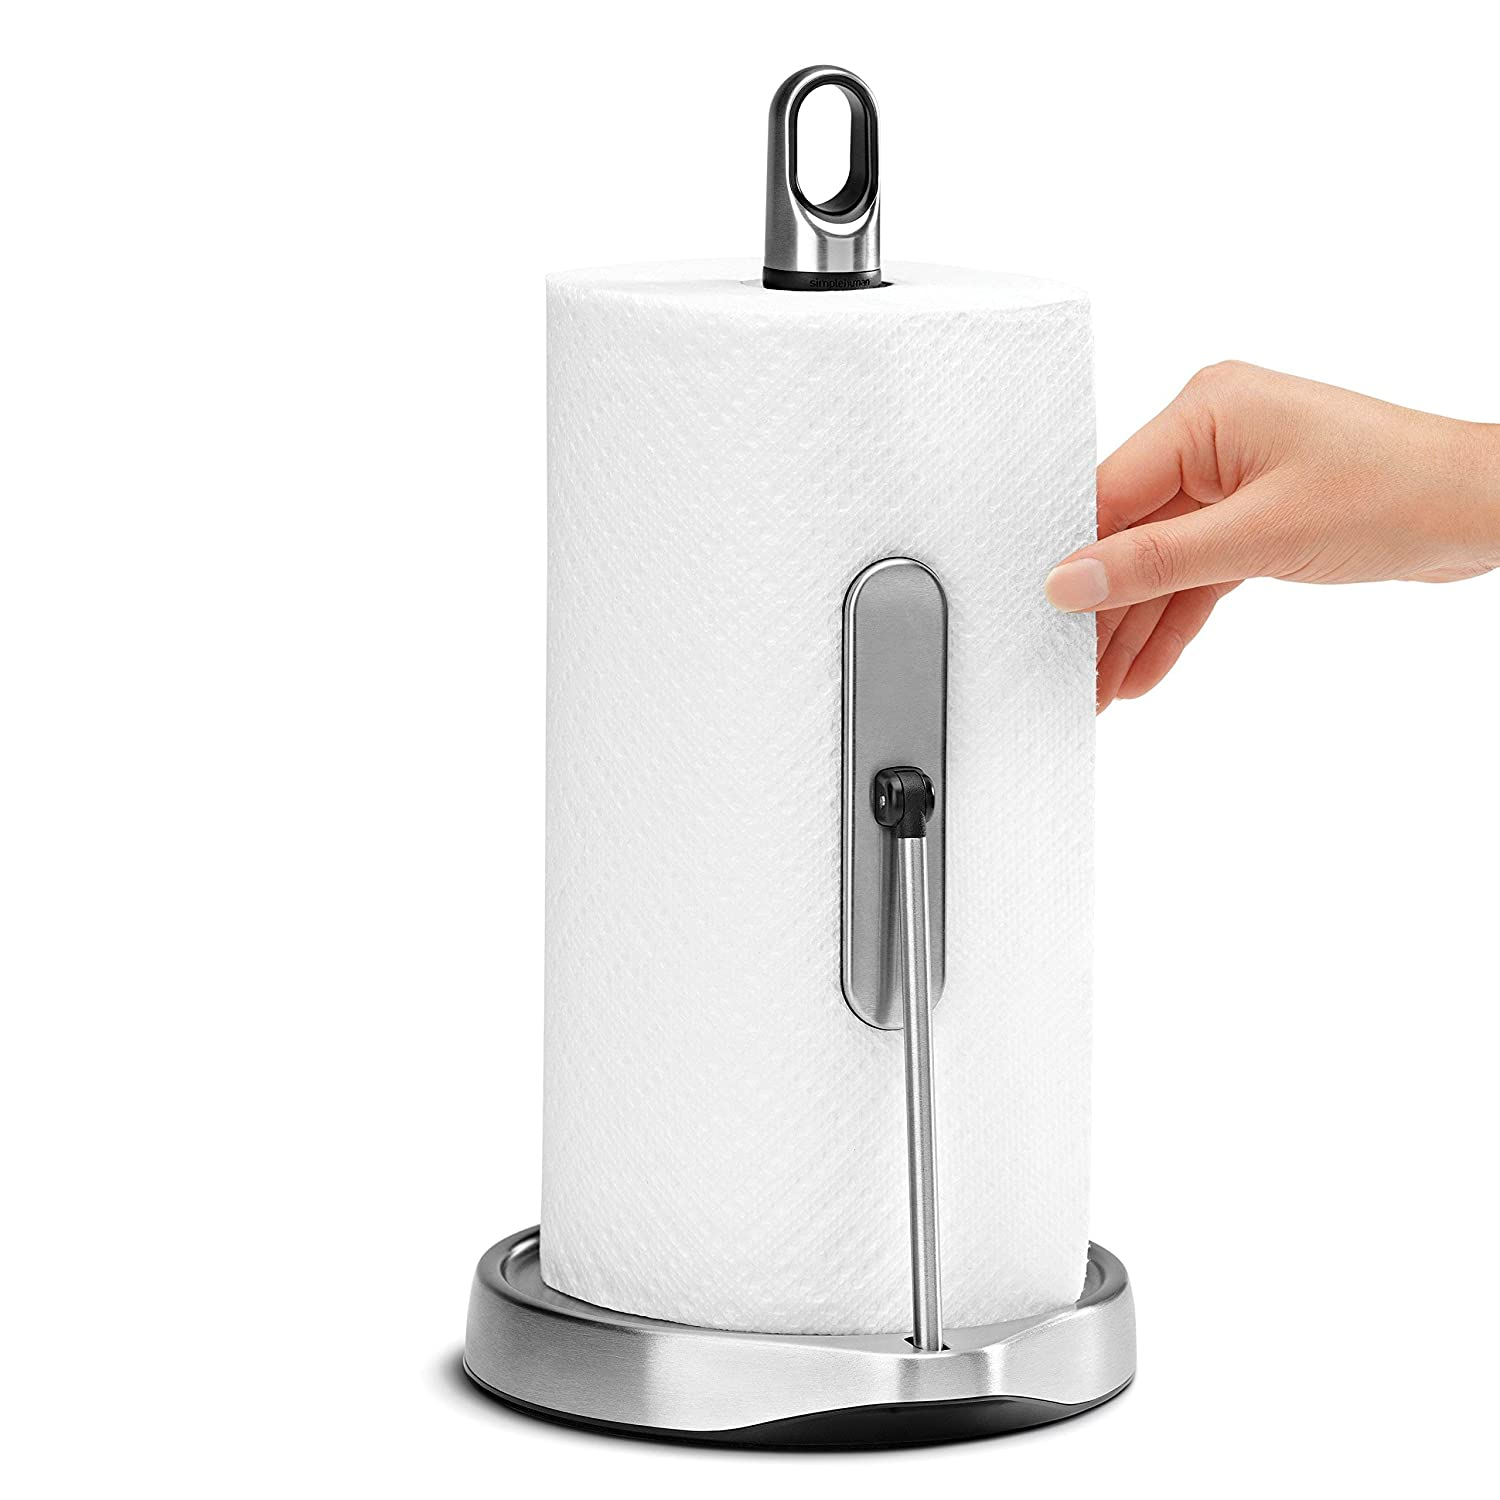 simplehuman Tension Arm Paper Towel Holder, Stainless Steel